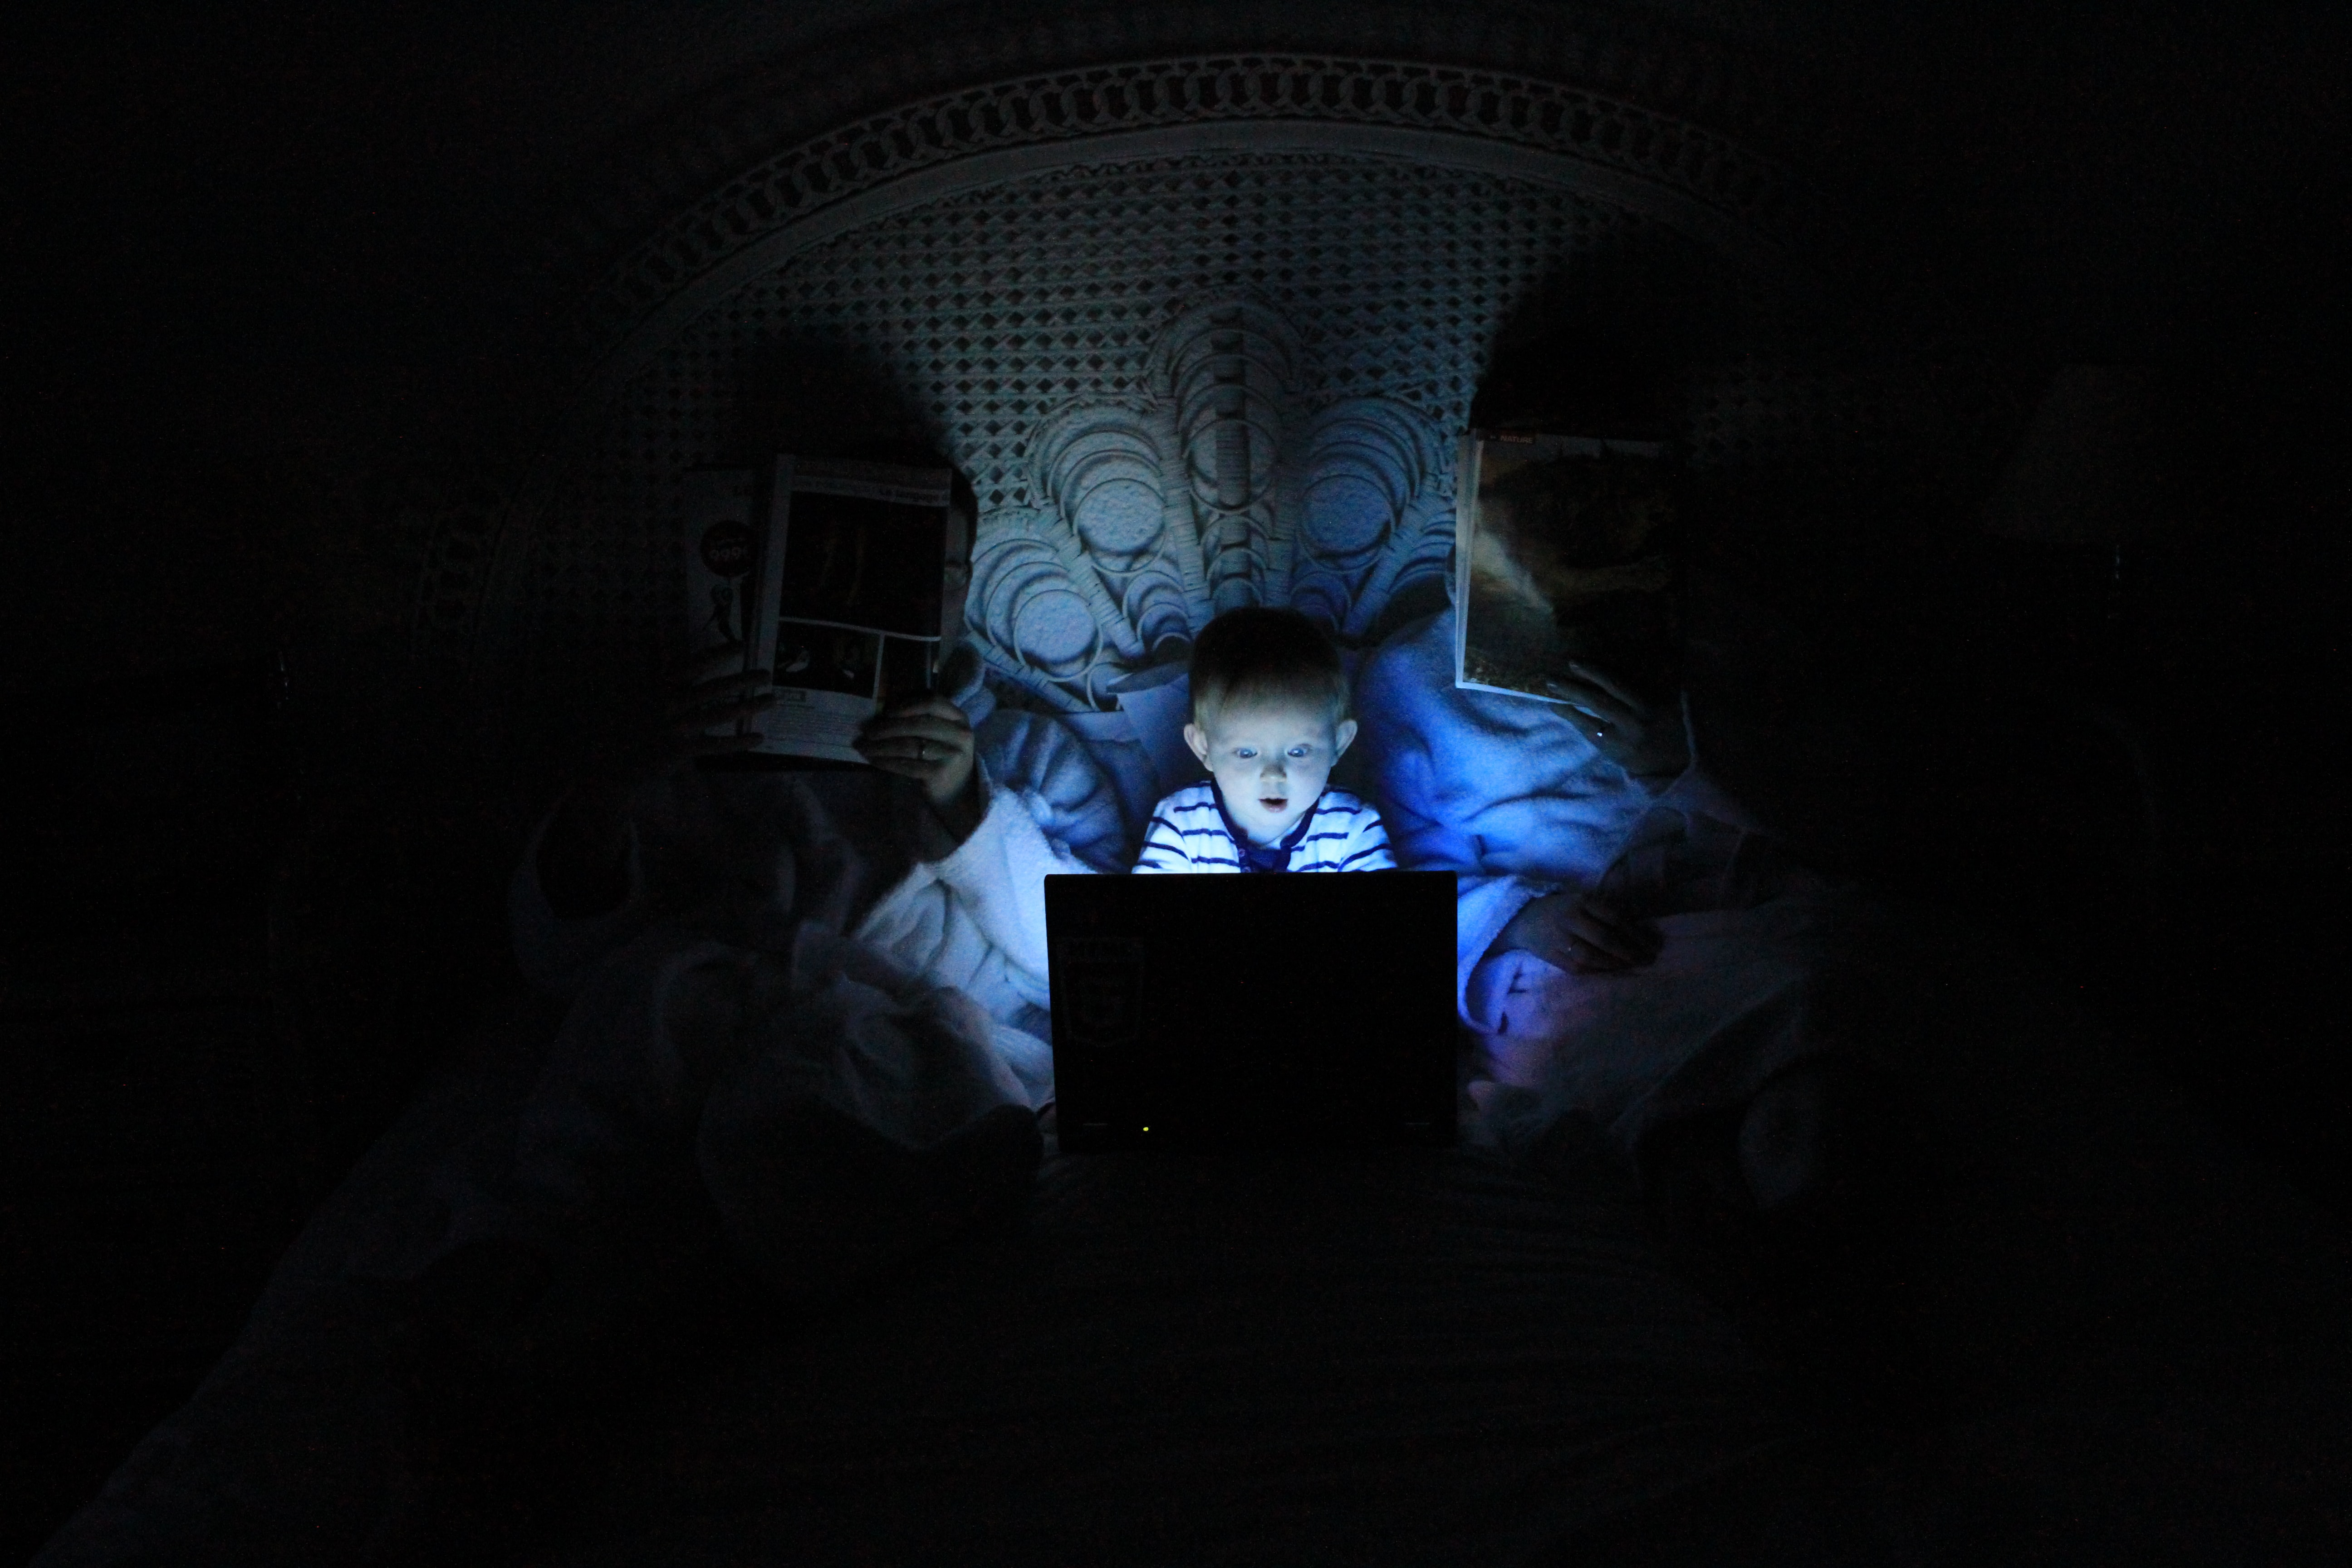 Young child watching a YouTube video in bed